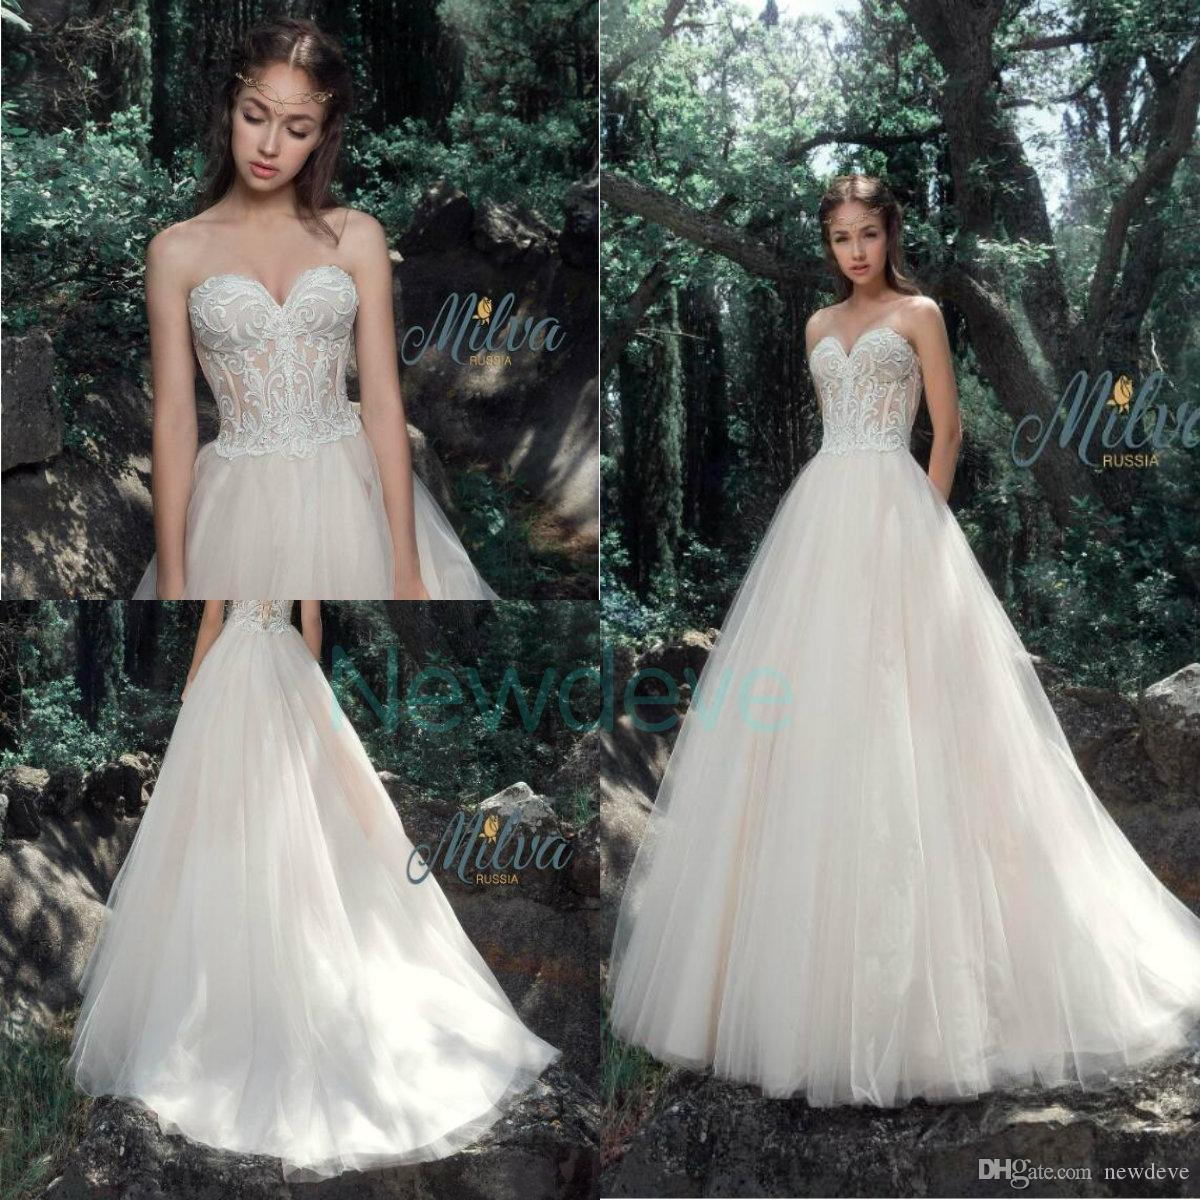 31ac77628f22 Discount Milva Bridal Wedding Dresses 2019 Hot Sexy Sweetheart Sleeveless  Backless Lace Country Bridal Gowns Plus Size Garden A Line Wedding Dress  Couture ...